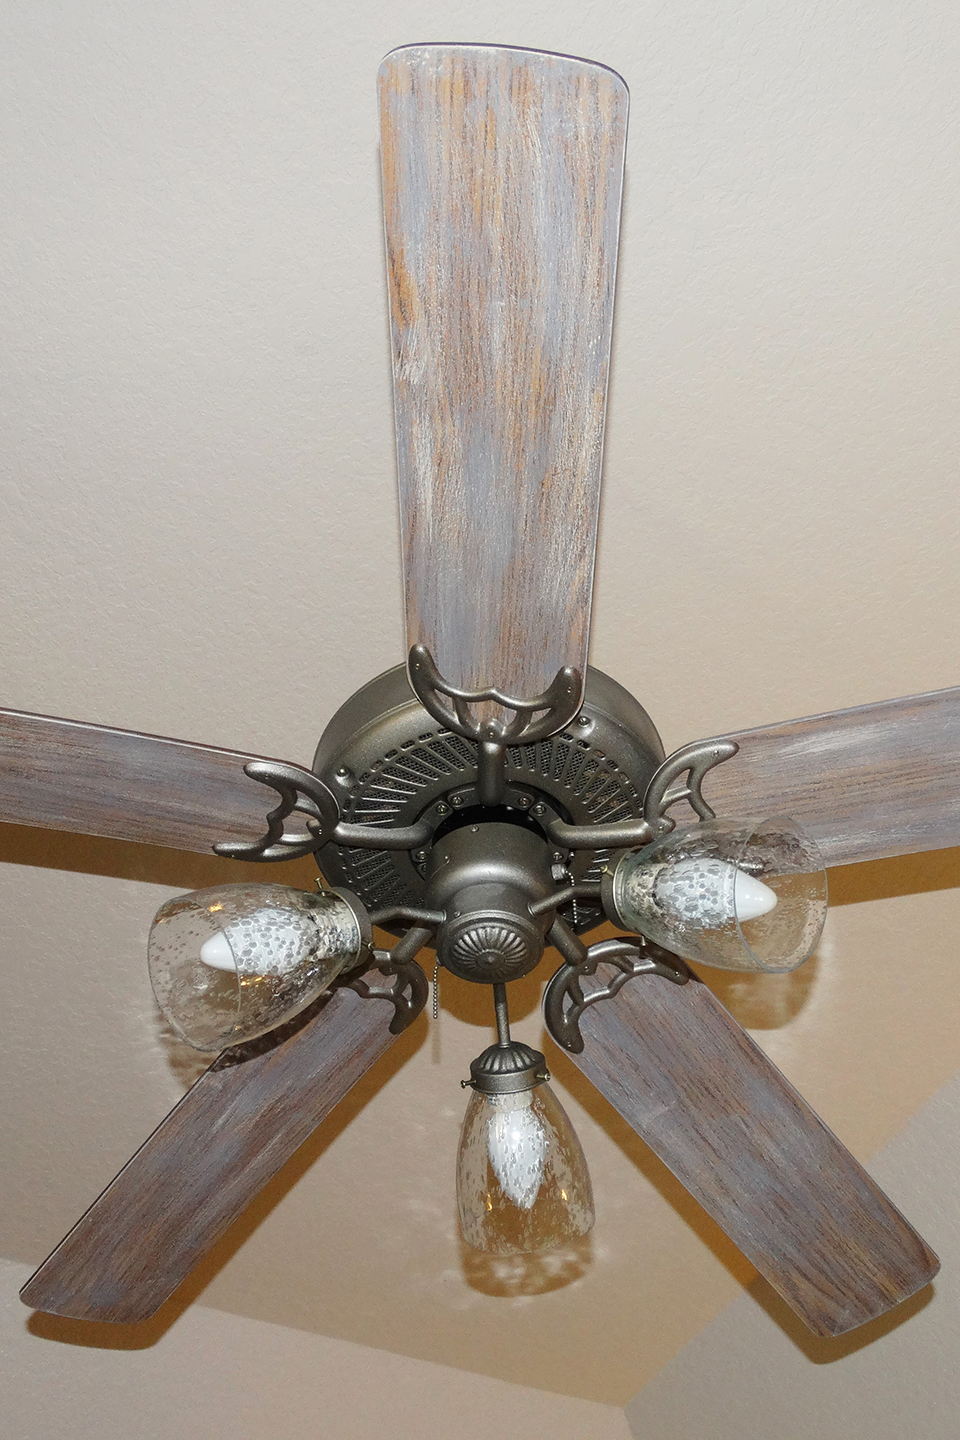 Dry-brushed wood ceiling fan blades